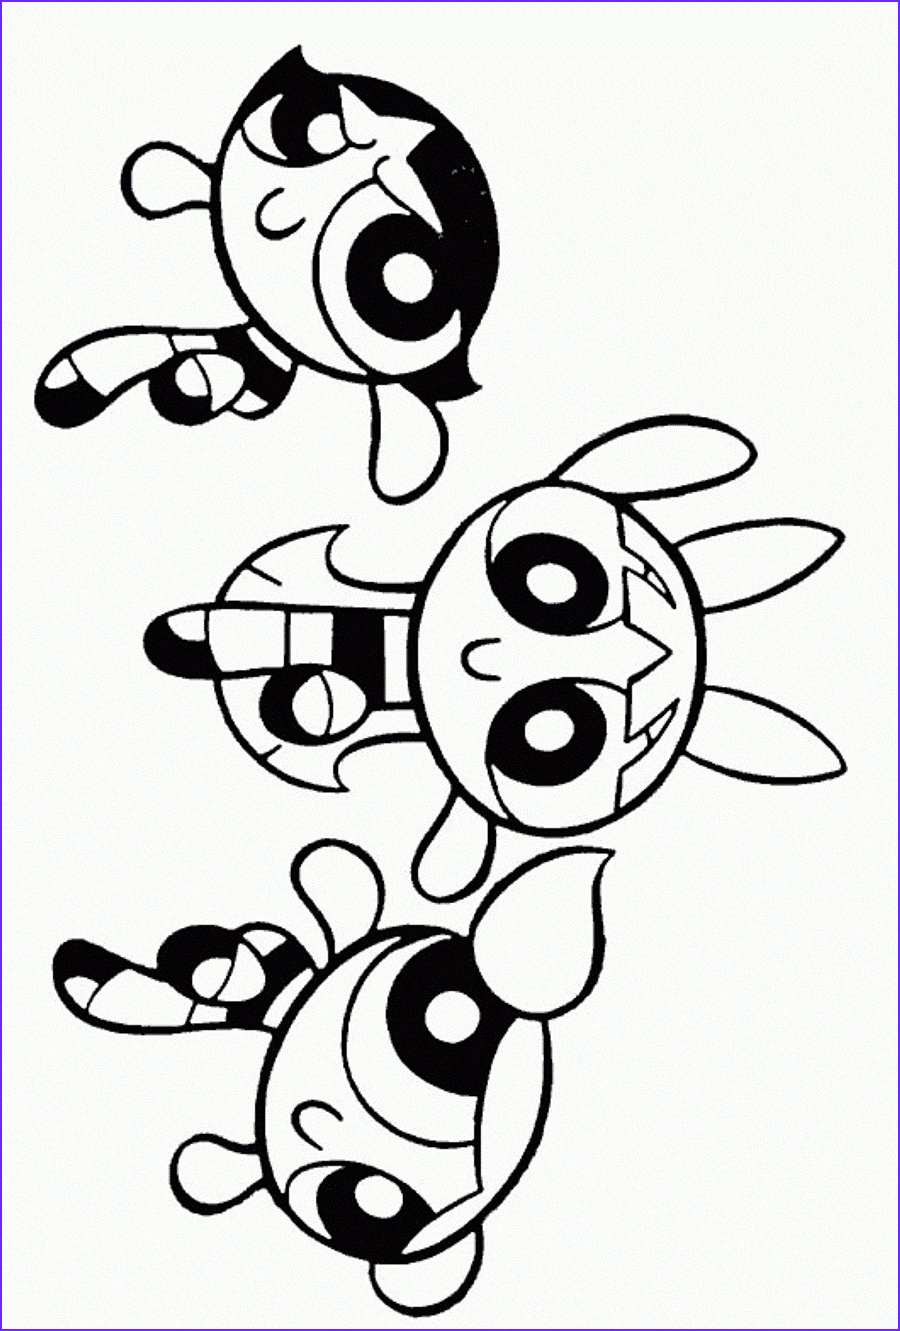 Print Coloring Pages Inspirational Photos Free Printable Powerpuff Girls Coloring Pages for Kids